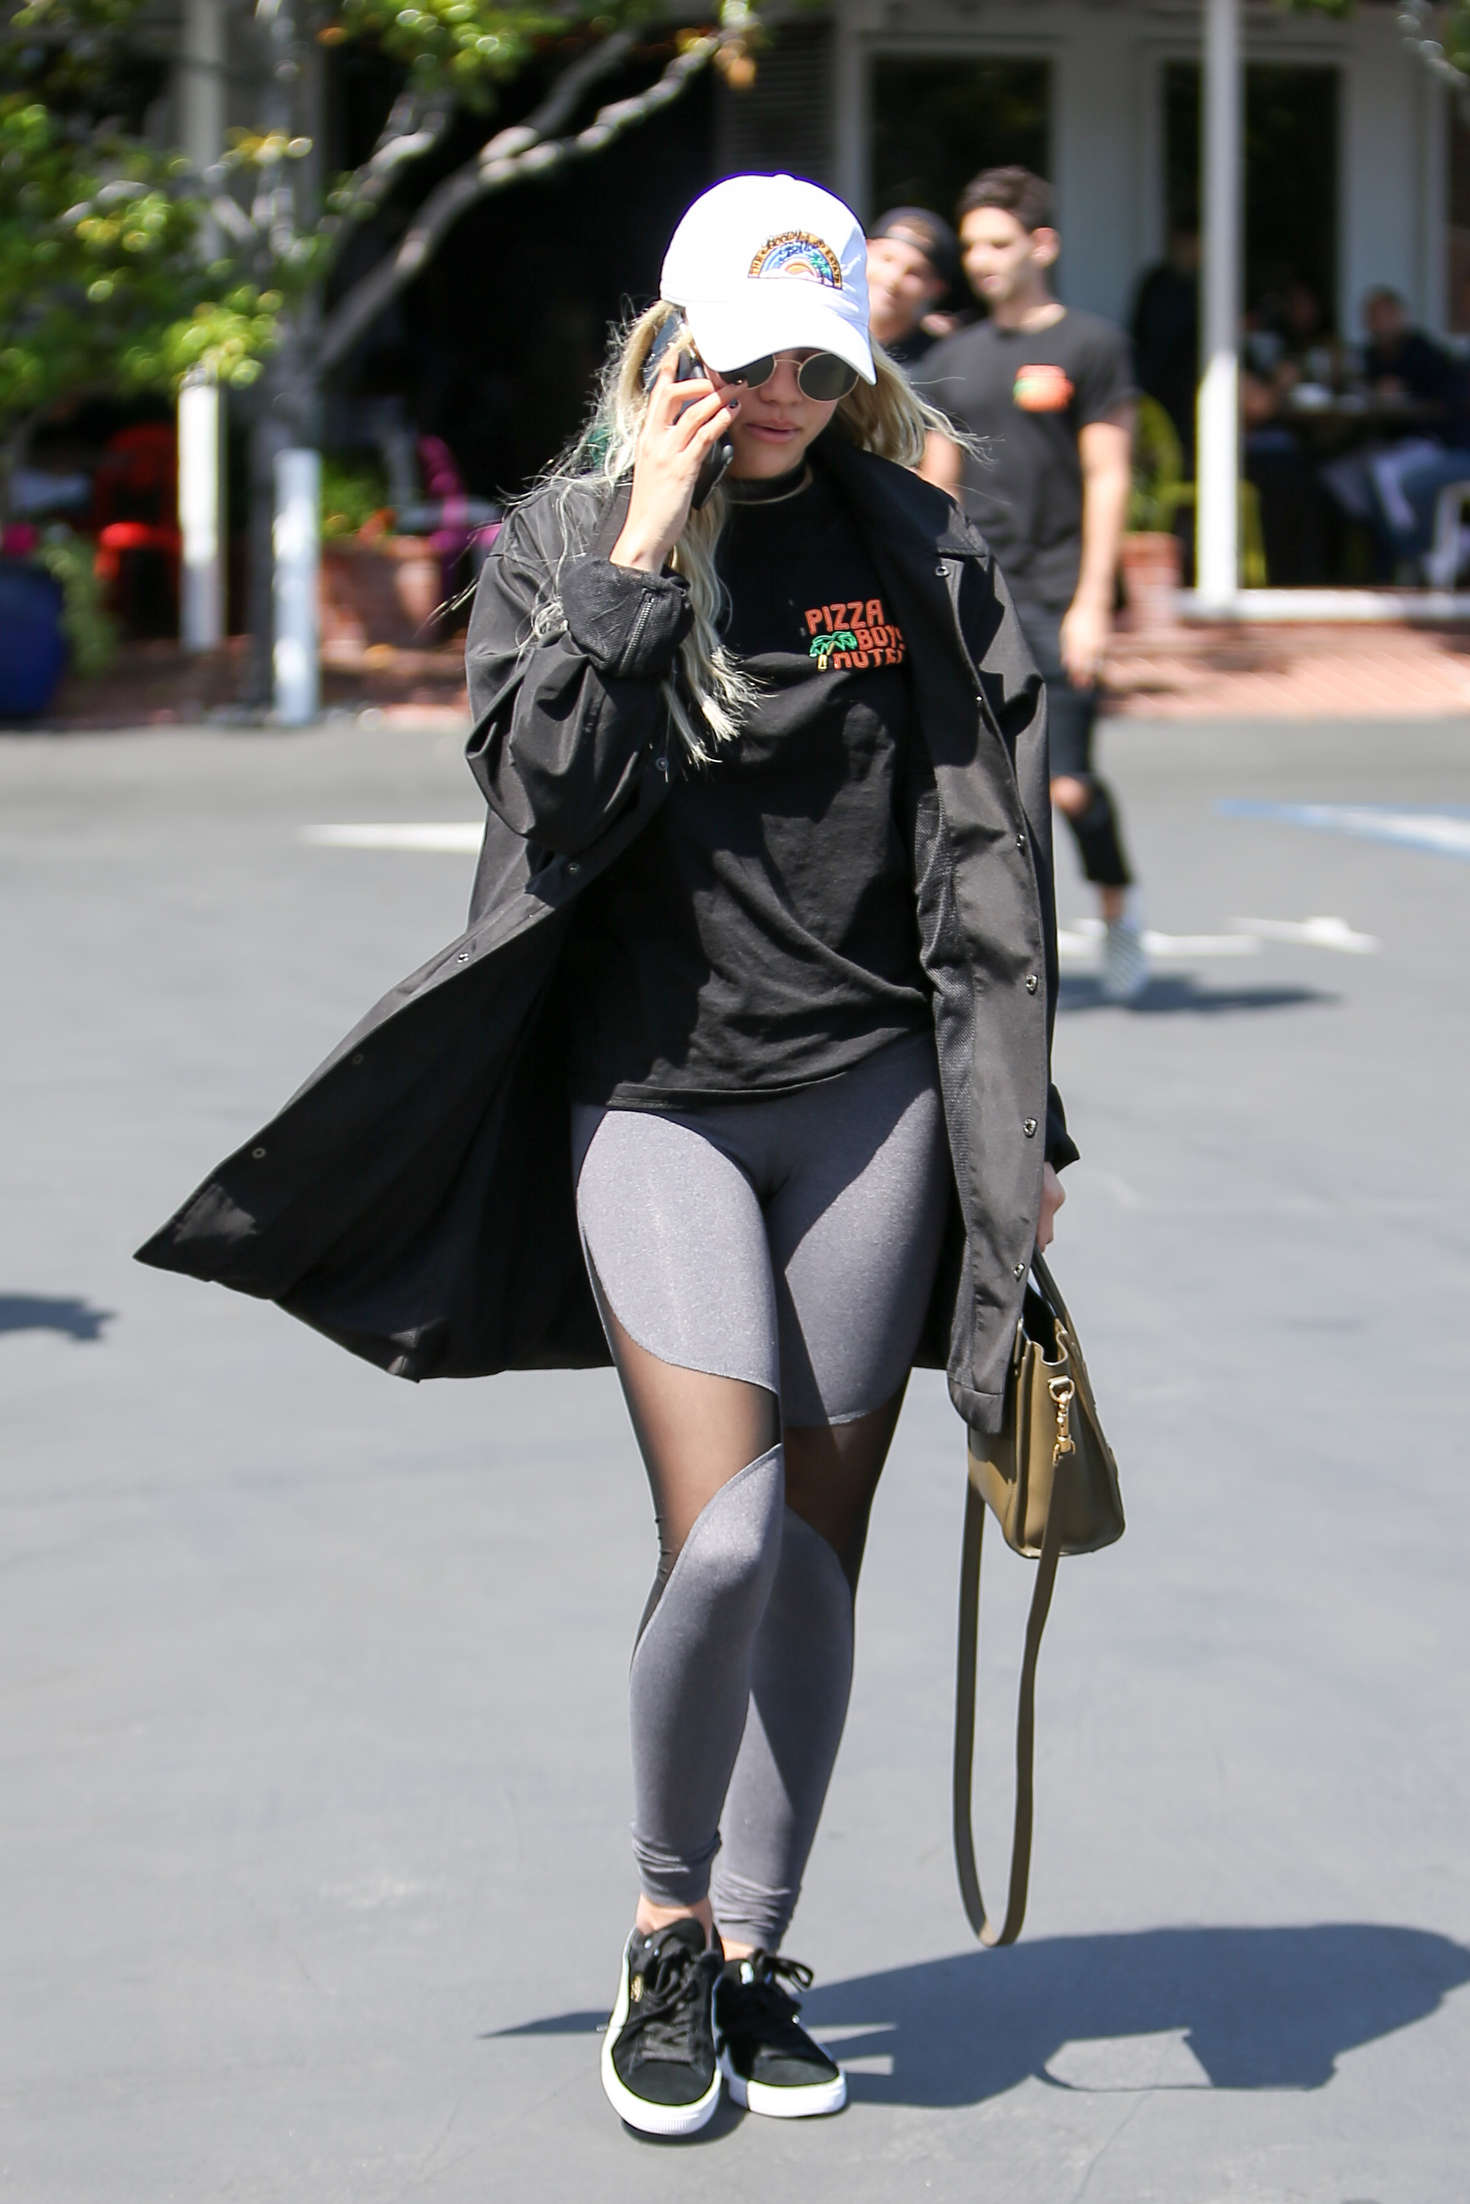 Sofia Richie in Tights at Fred Segal in West Hollywood